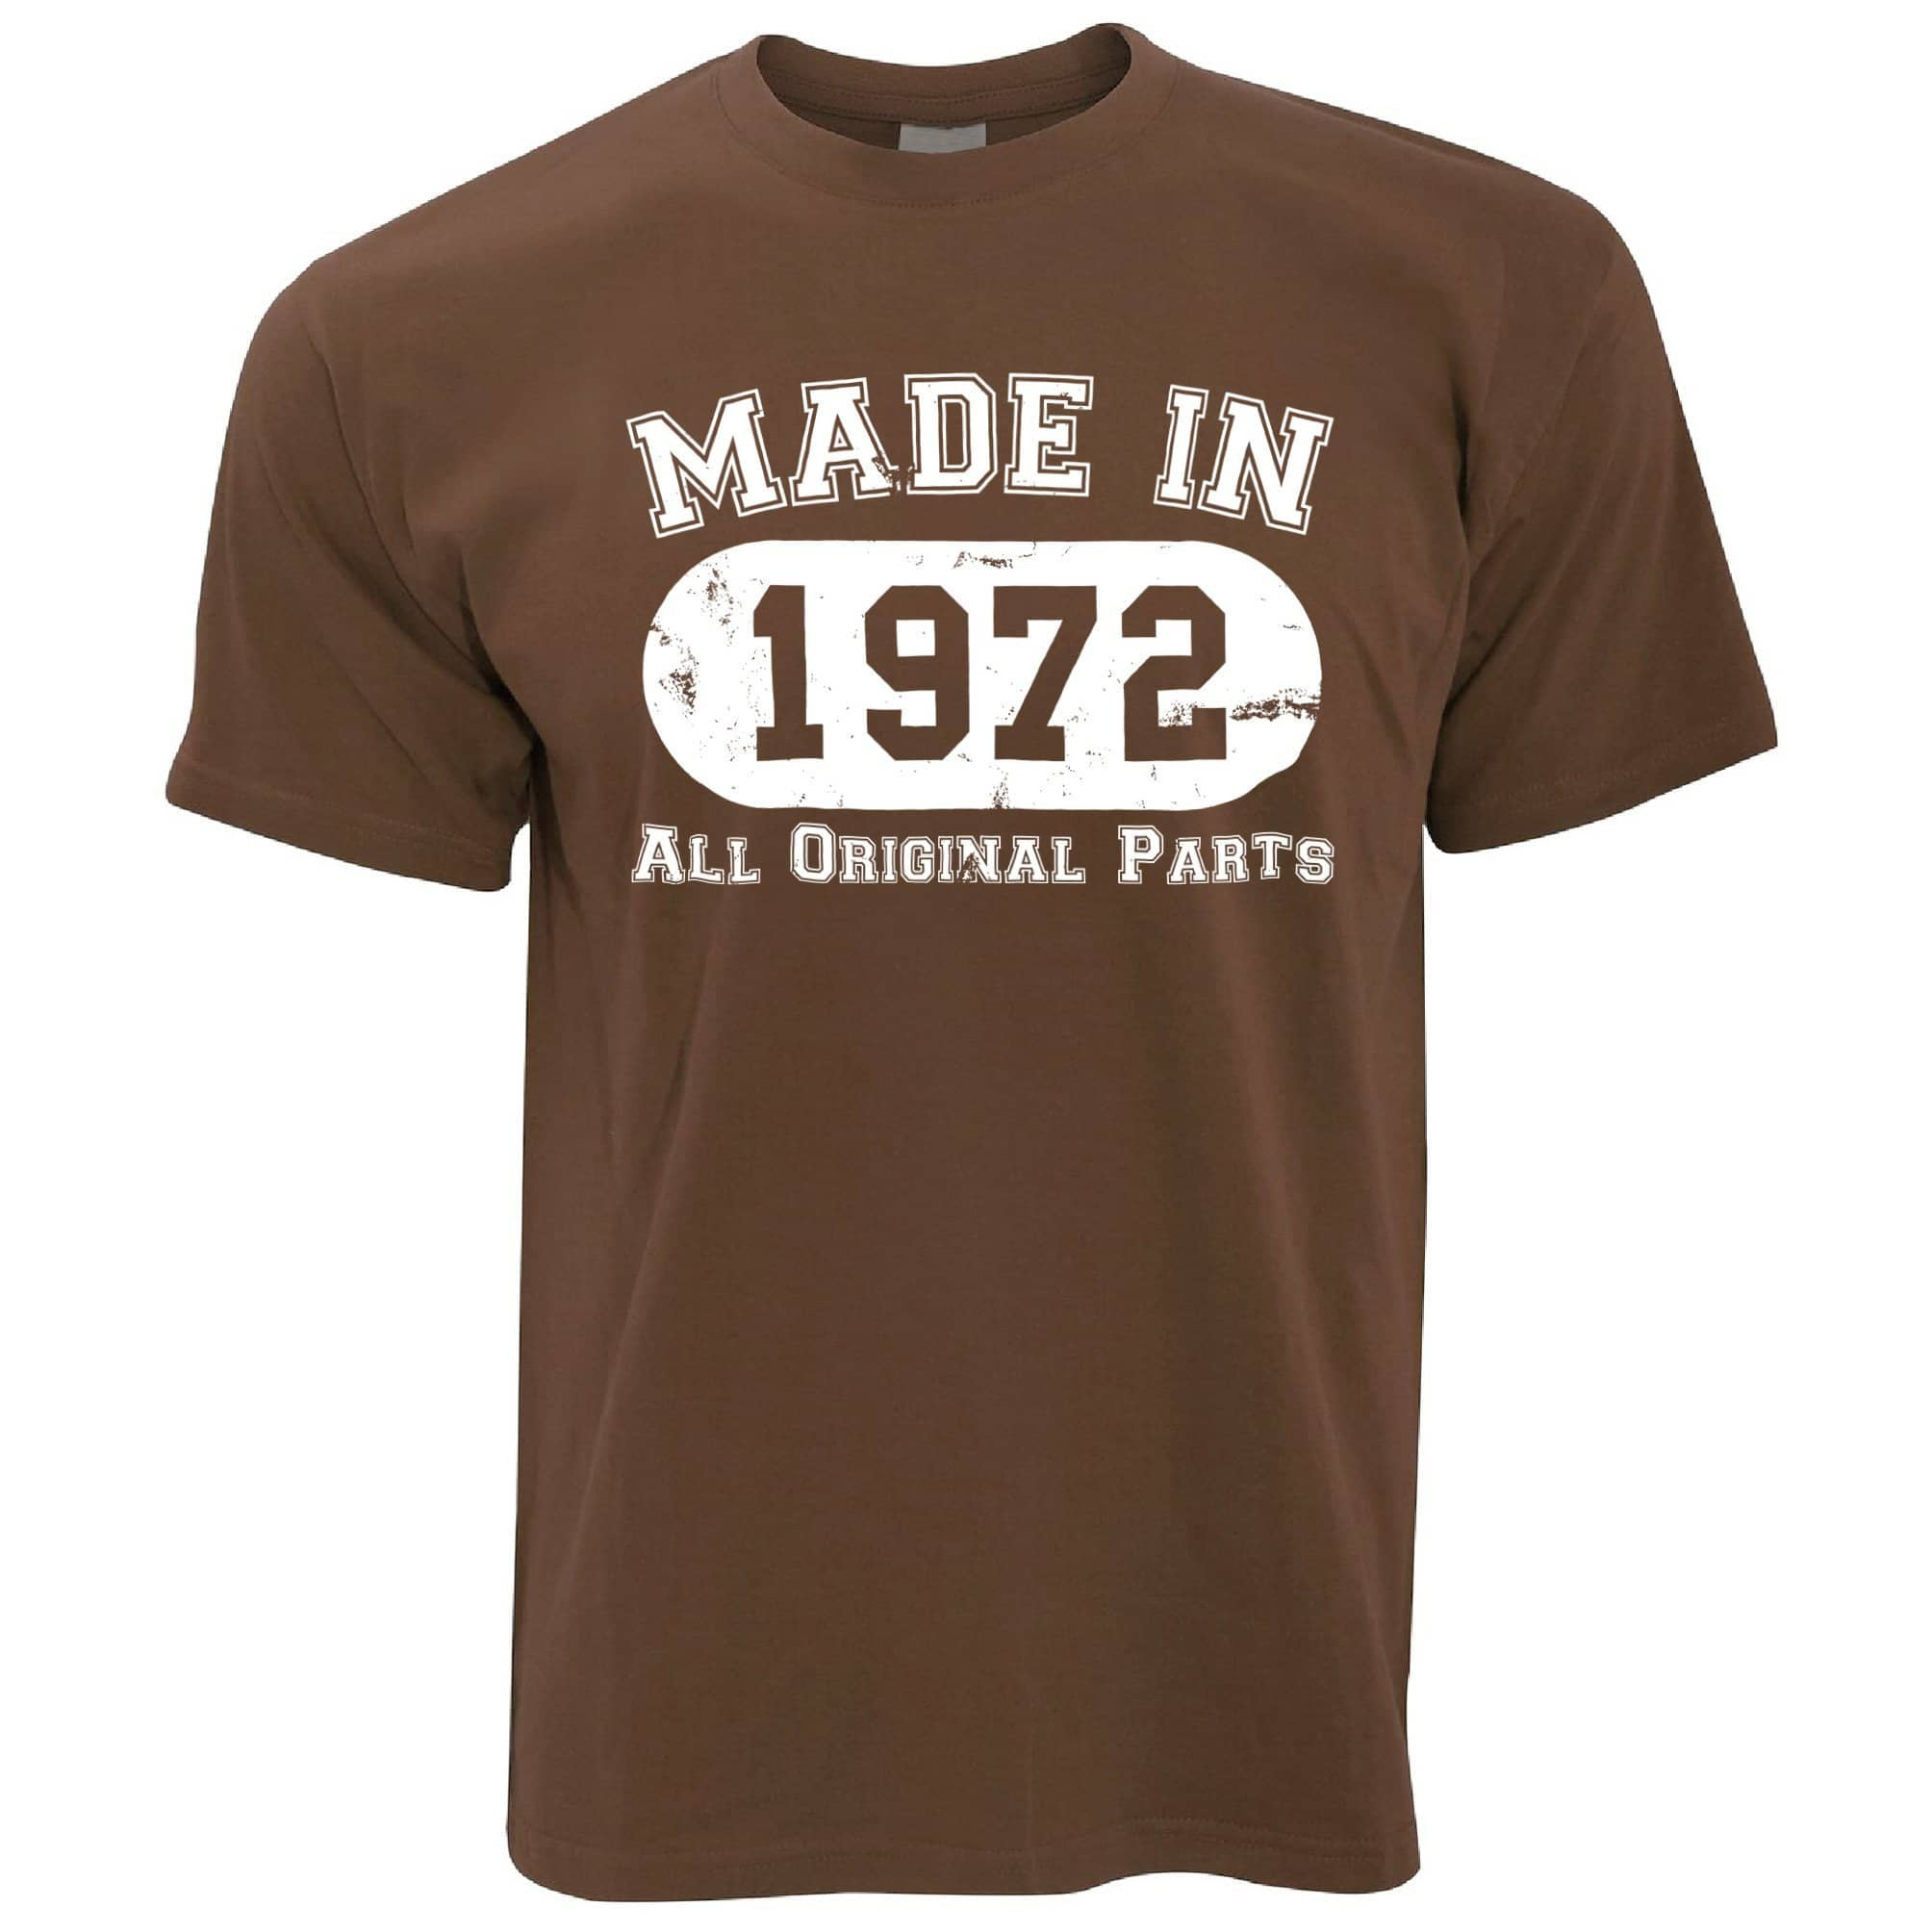 Made in 1972 All Original Parts Mens T-Shirt [Distressed]